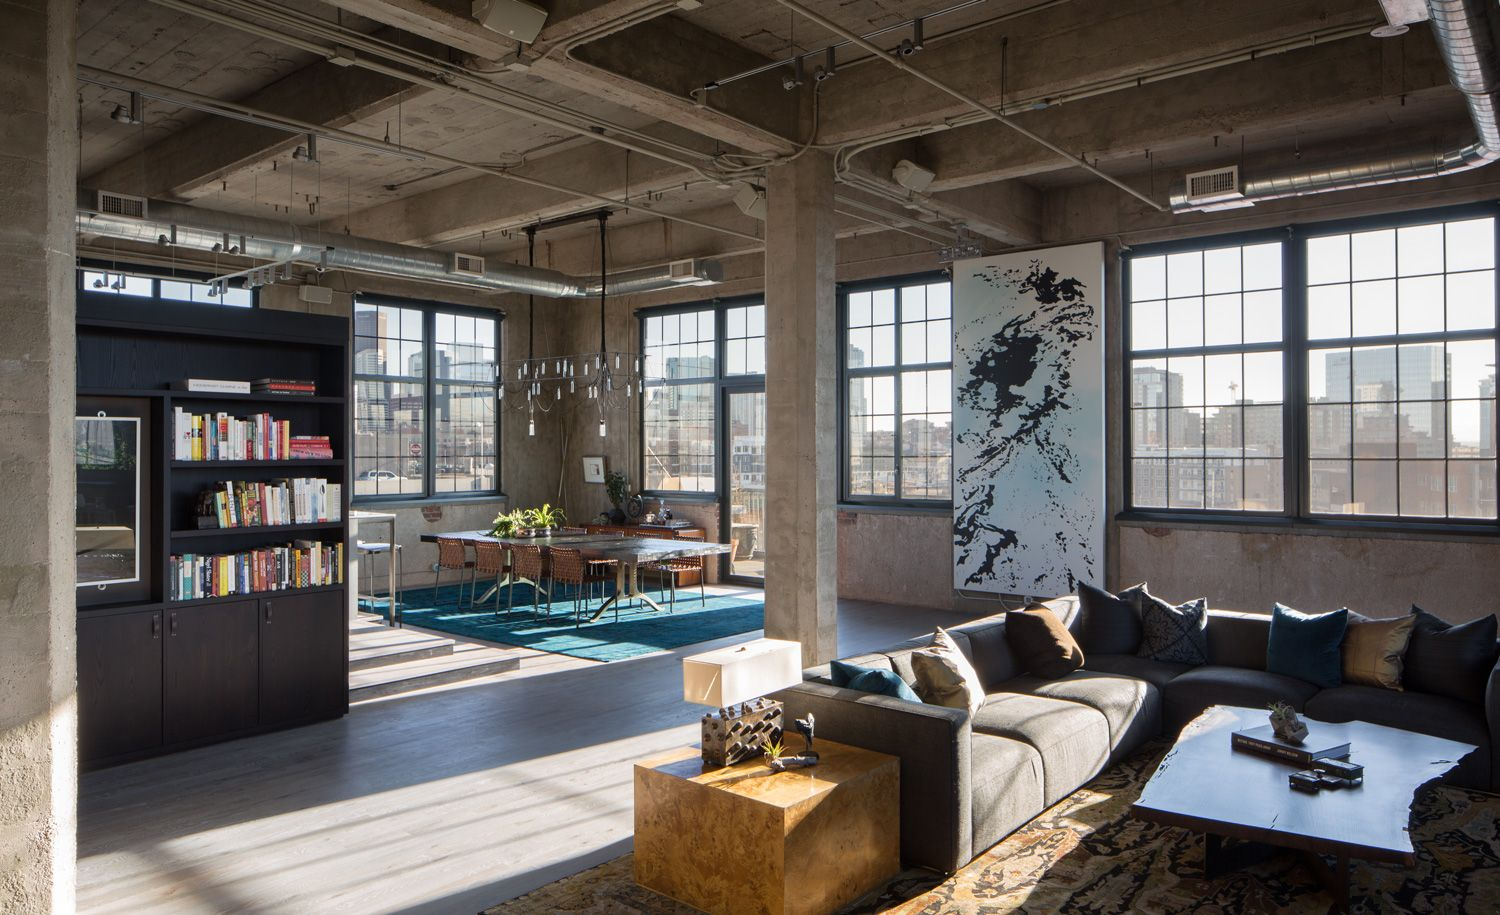 interior design warehouse - 1000+ images about Loft Design on Pinterest Loft, rchitects and ...